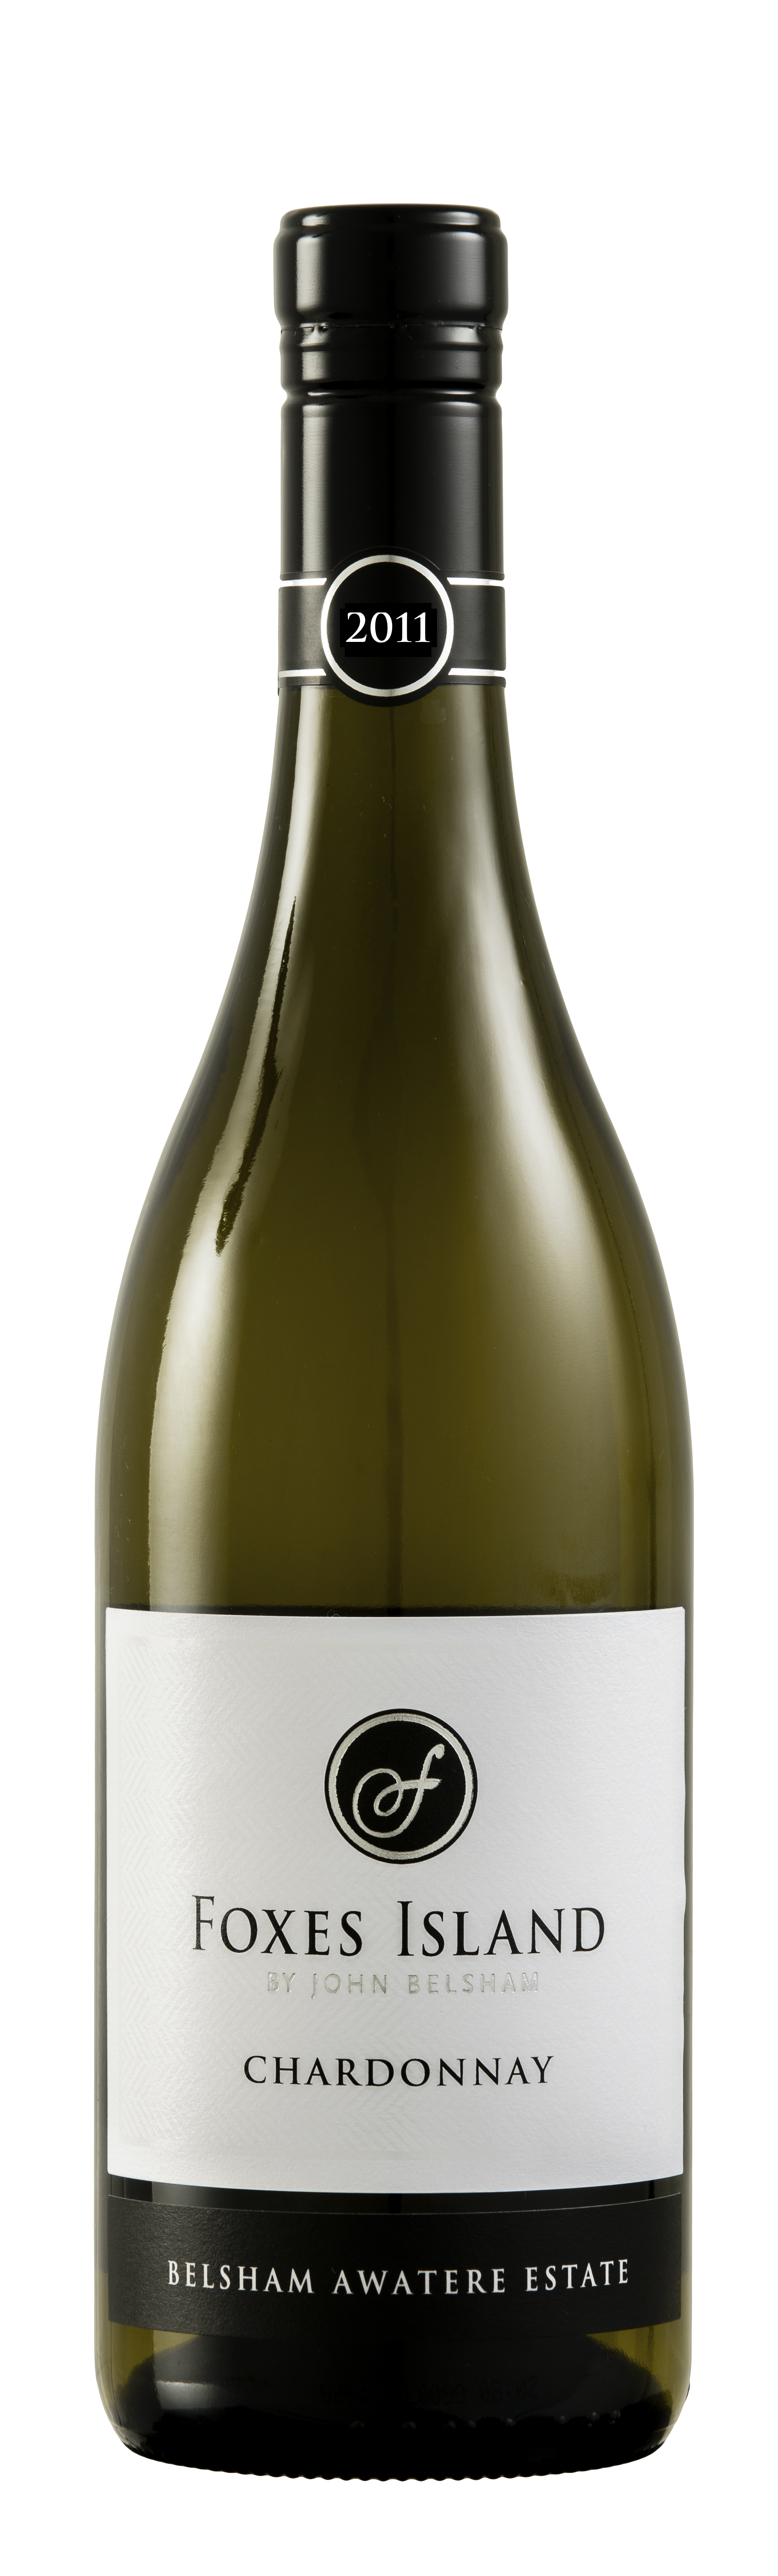 Foxes Island 2011 Chardonnay Belsham Awatere Estate